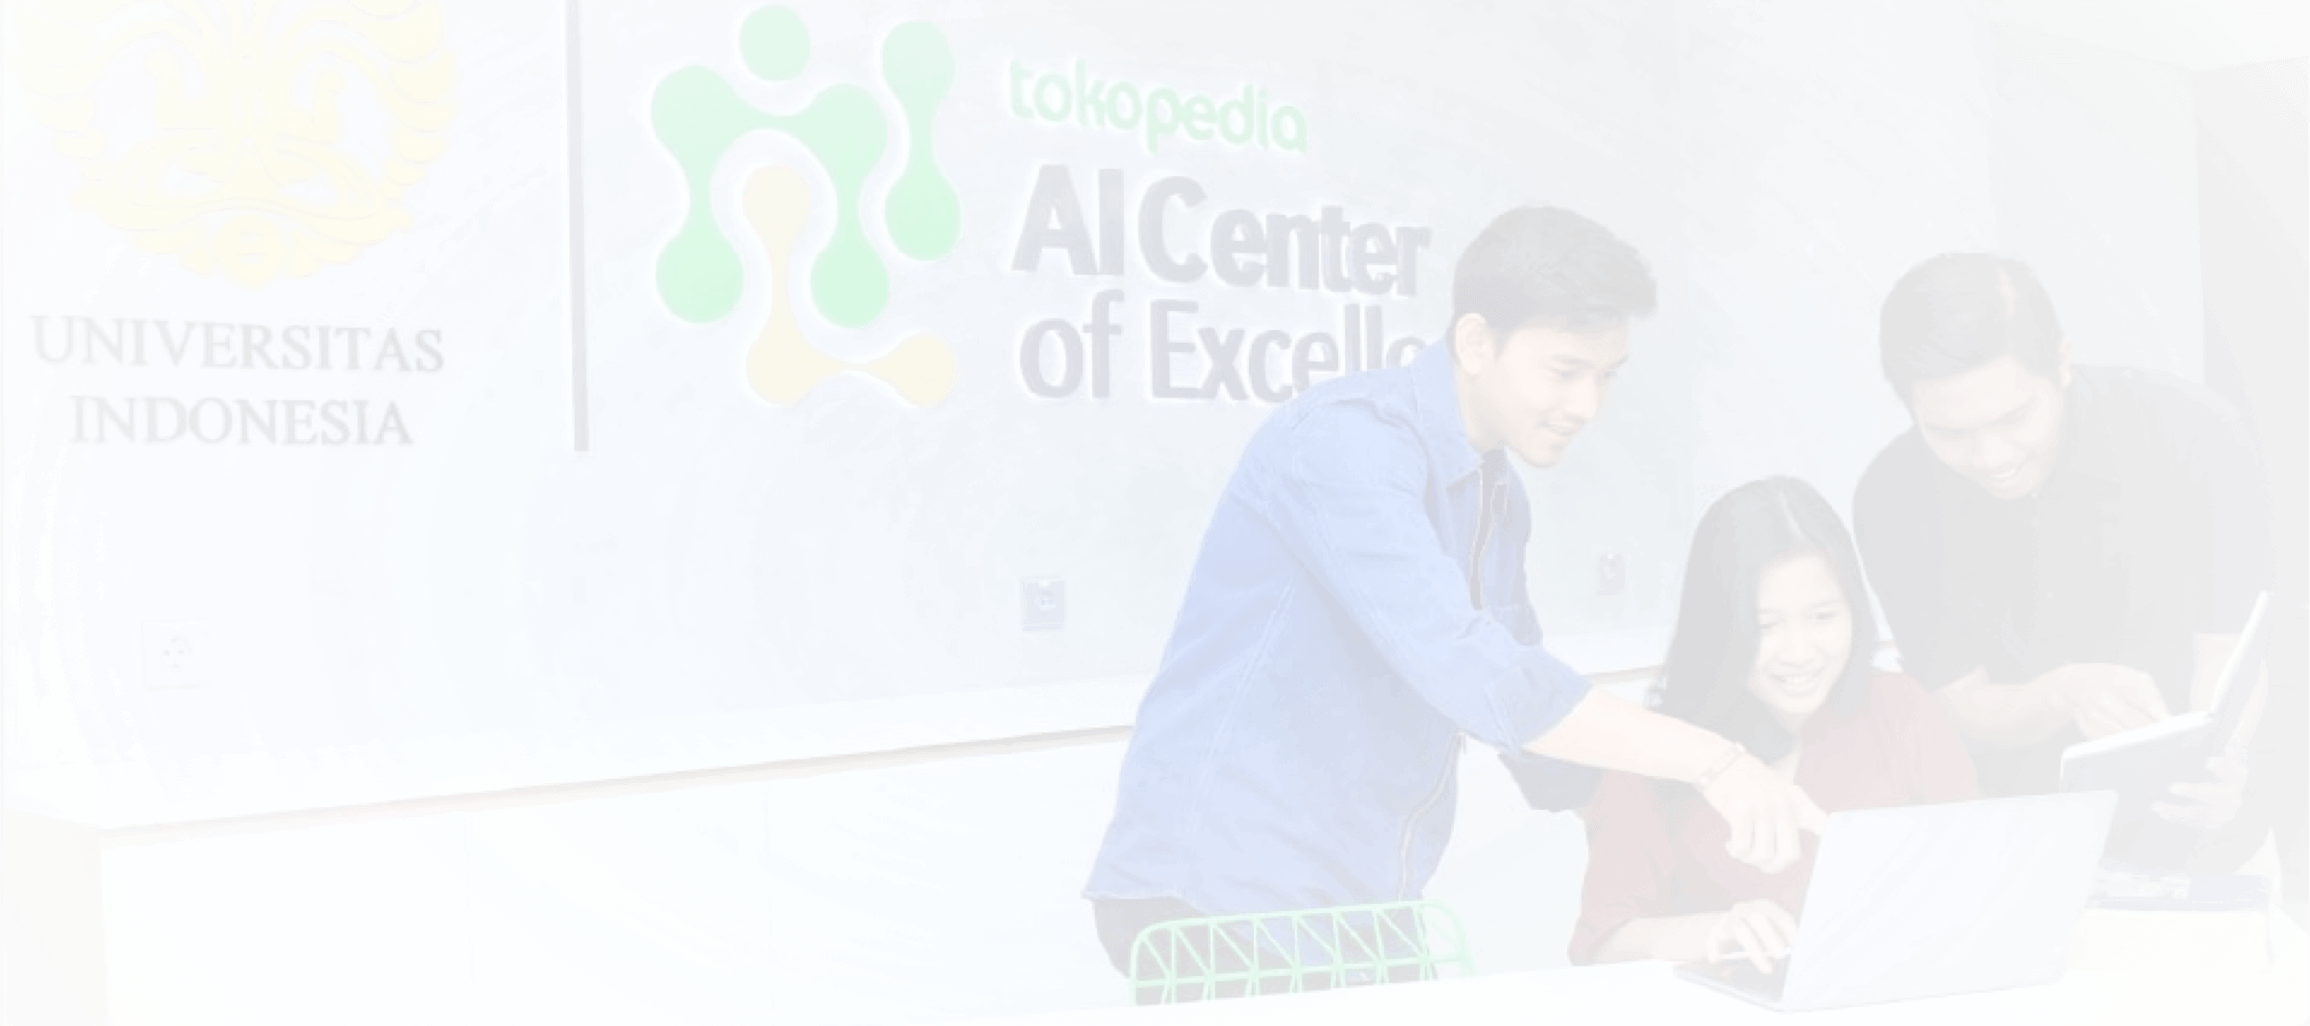 tokopedia_AI_center.png